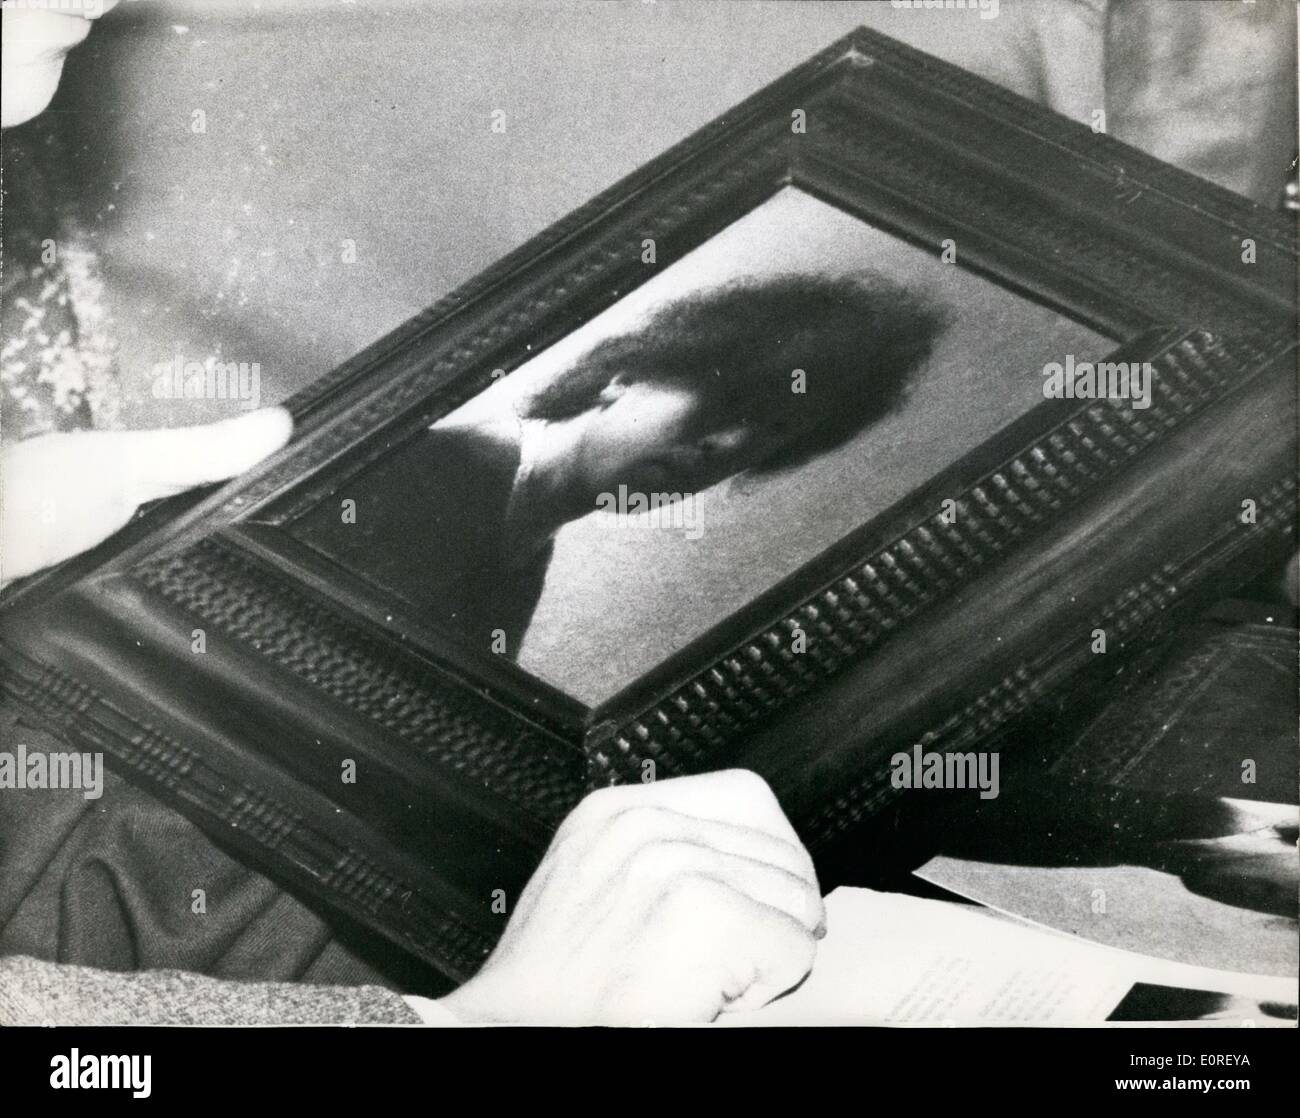 Jun. 06, 1959 - Rembrandt Self-Portrait Worth £20,000 Lay in Attic for Ten Years! An old painting lay in a family's junk room for ten years was revealed in London this afternoon to be a Rembrandt self-portrait-worth more than £20,000 . Ar Sotheby's a fortnight ago it was sold by a Glasgow schoolmaster for only a £1,700. The new owner had it cleaned only to discover that it was worth nearly fifteen times as much. Painted about 1628 its measurements are 9 3/8 X 7 7/8 inches. The new owner isn't thinking of re-selling it. The painting is unsigned - Stock Image